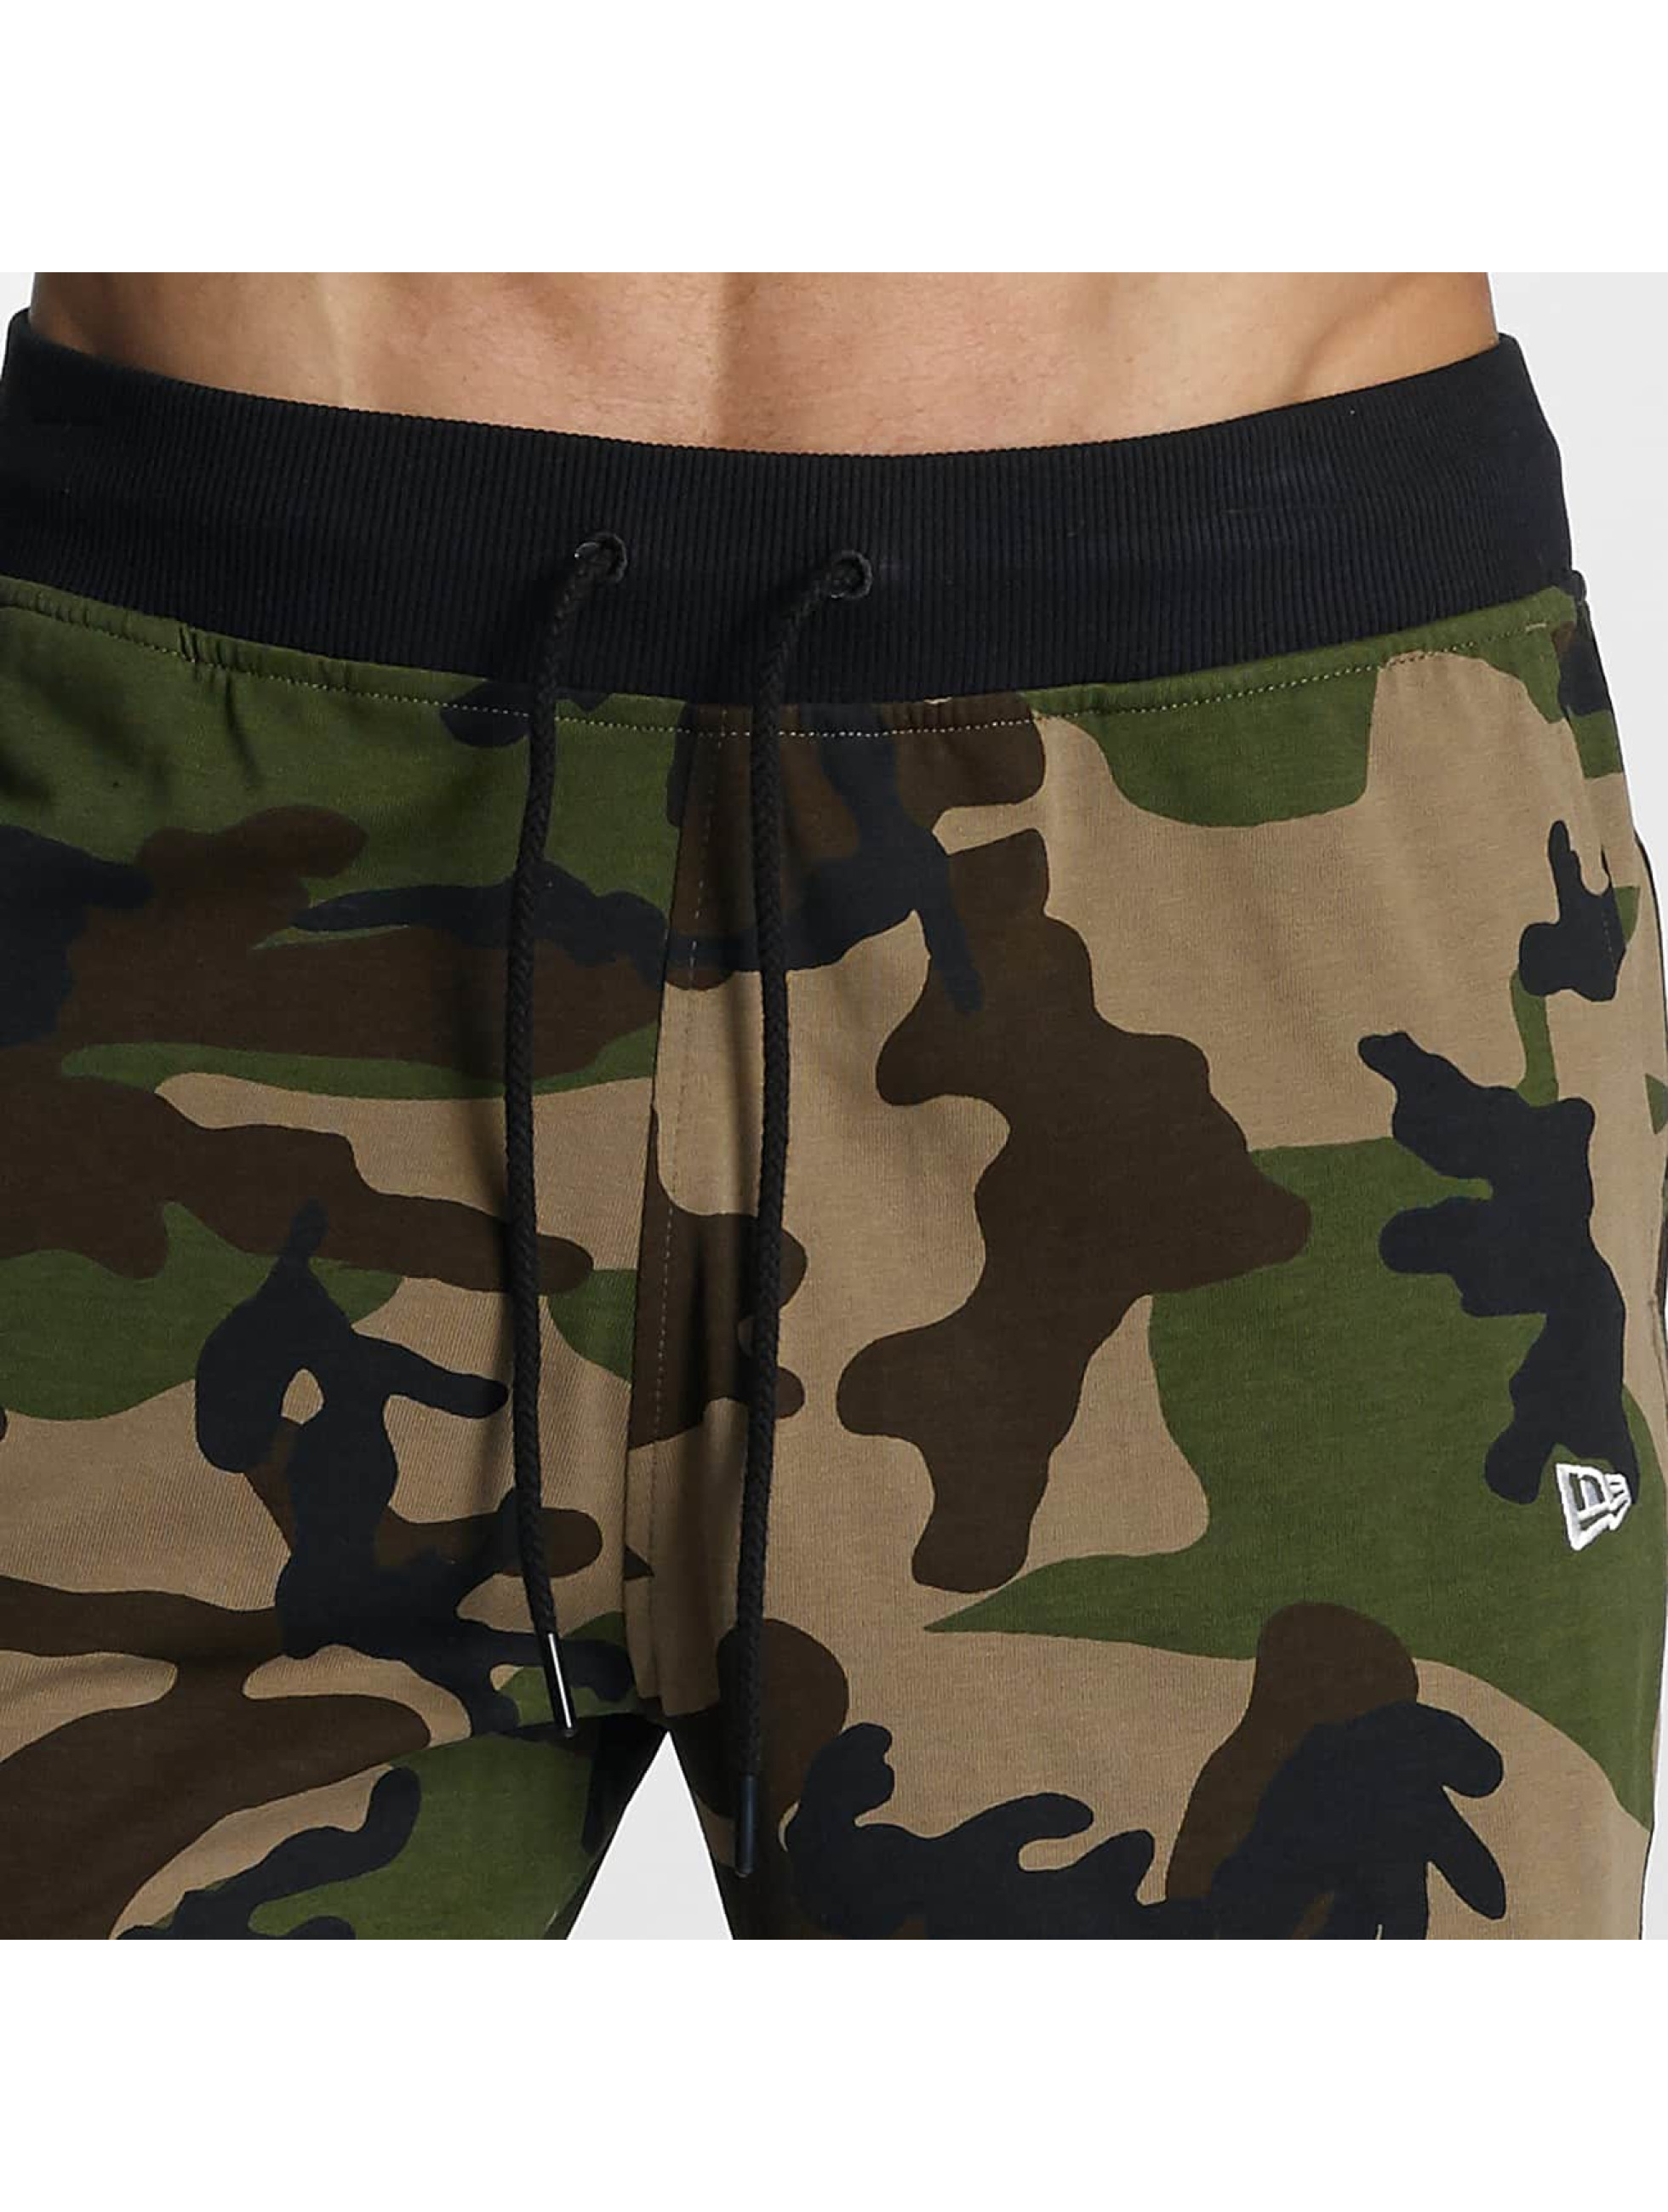 New Era Short Team App NY Yankees camouflage